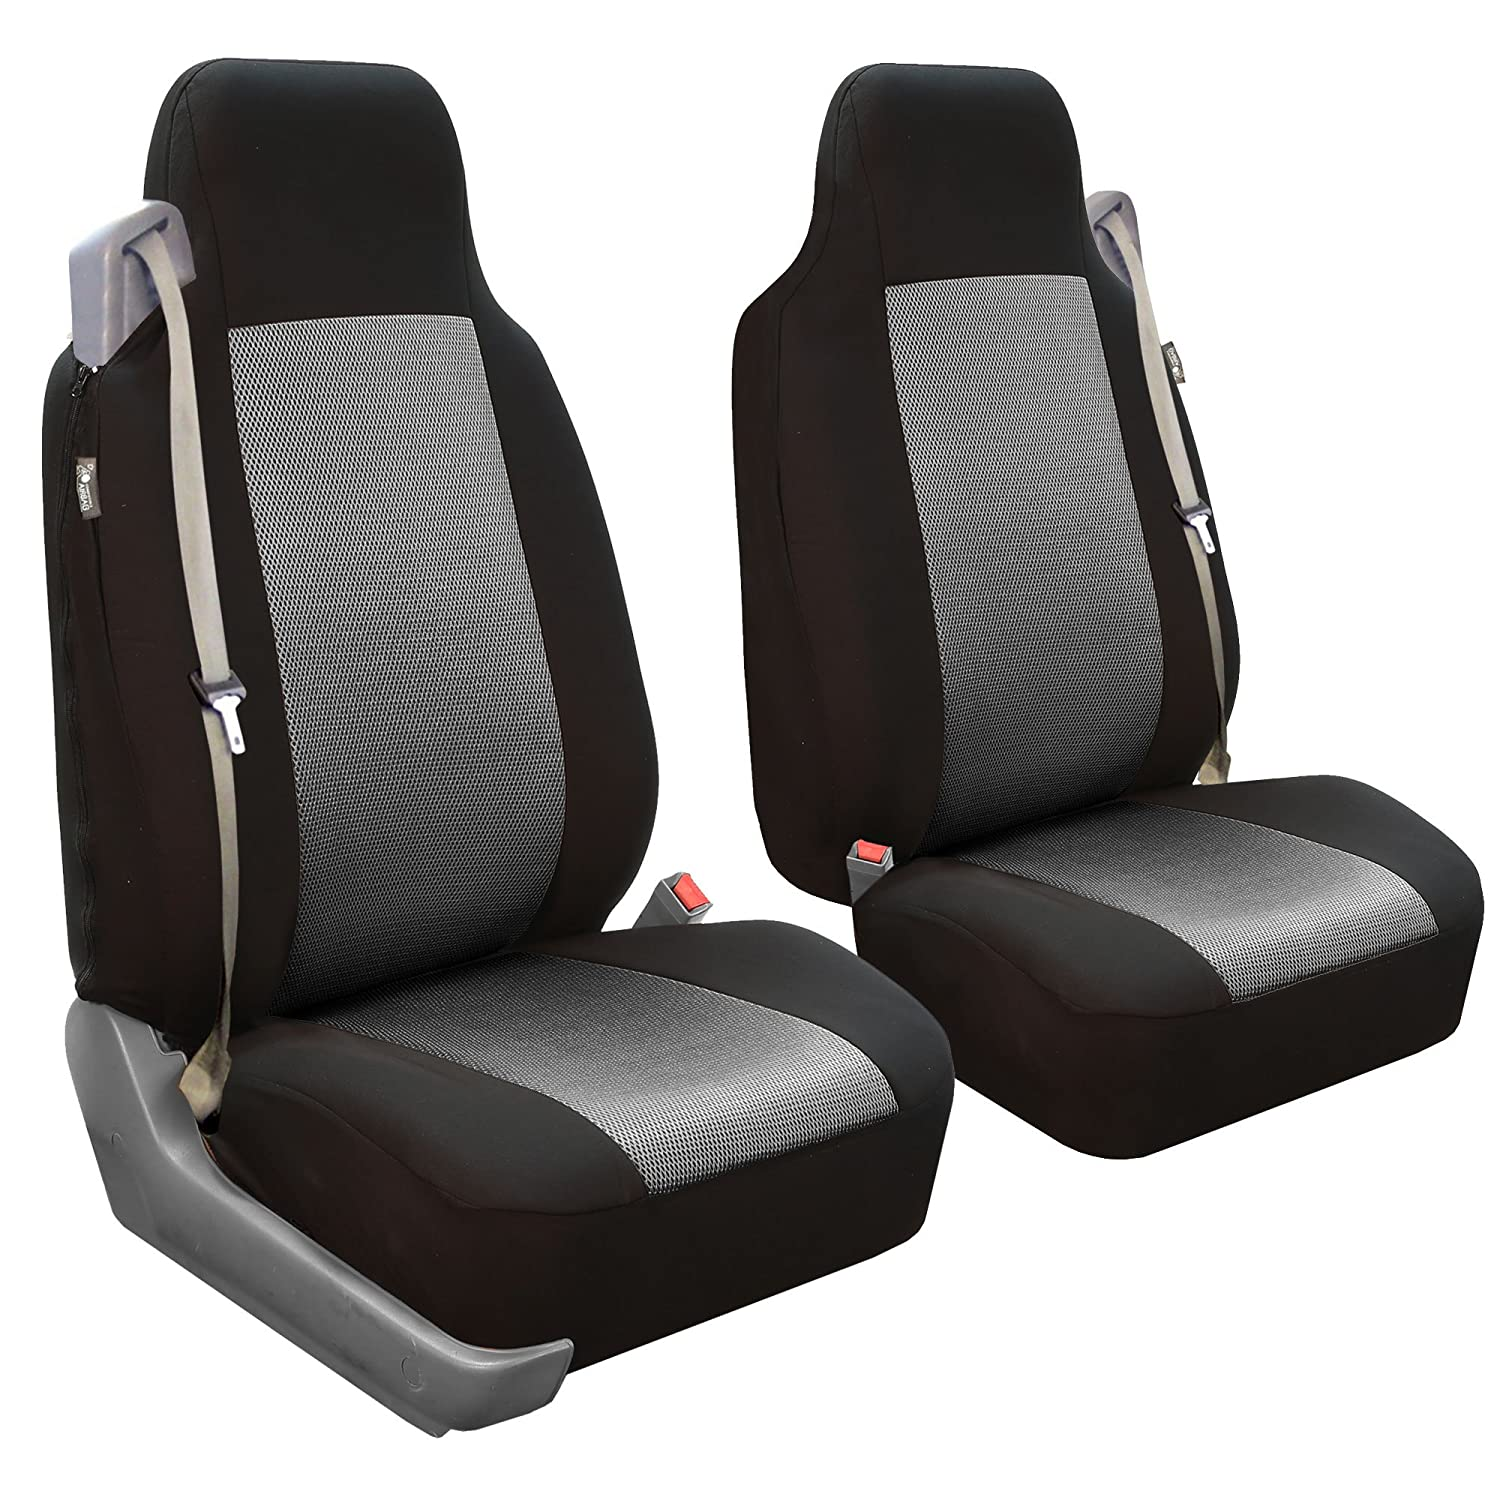 Solid Built-in Seatbelt Compatible FH Group FB302BLACK102 Black Classic Cloth Front High Back Seat Cover Set of 2